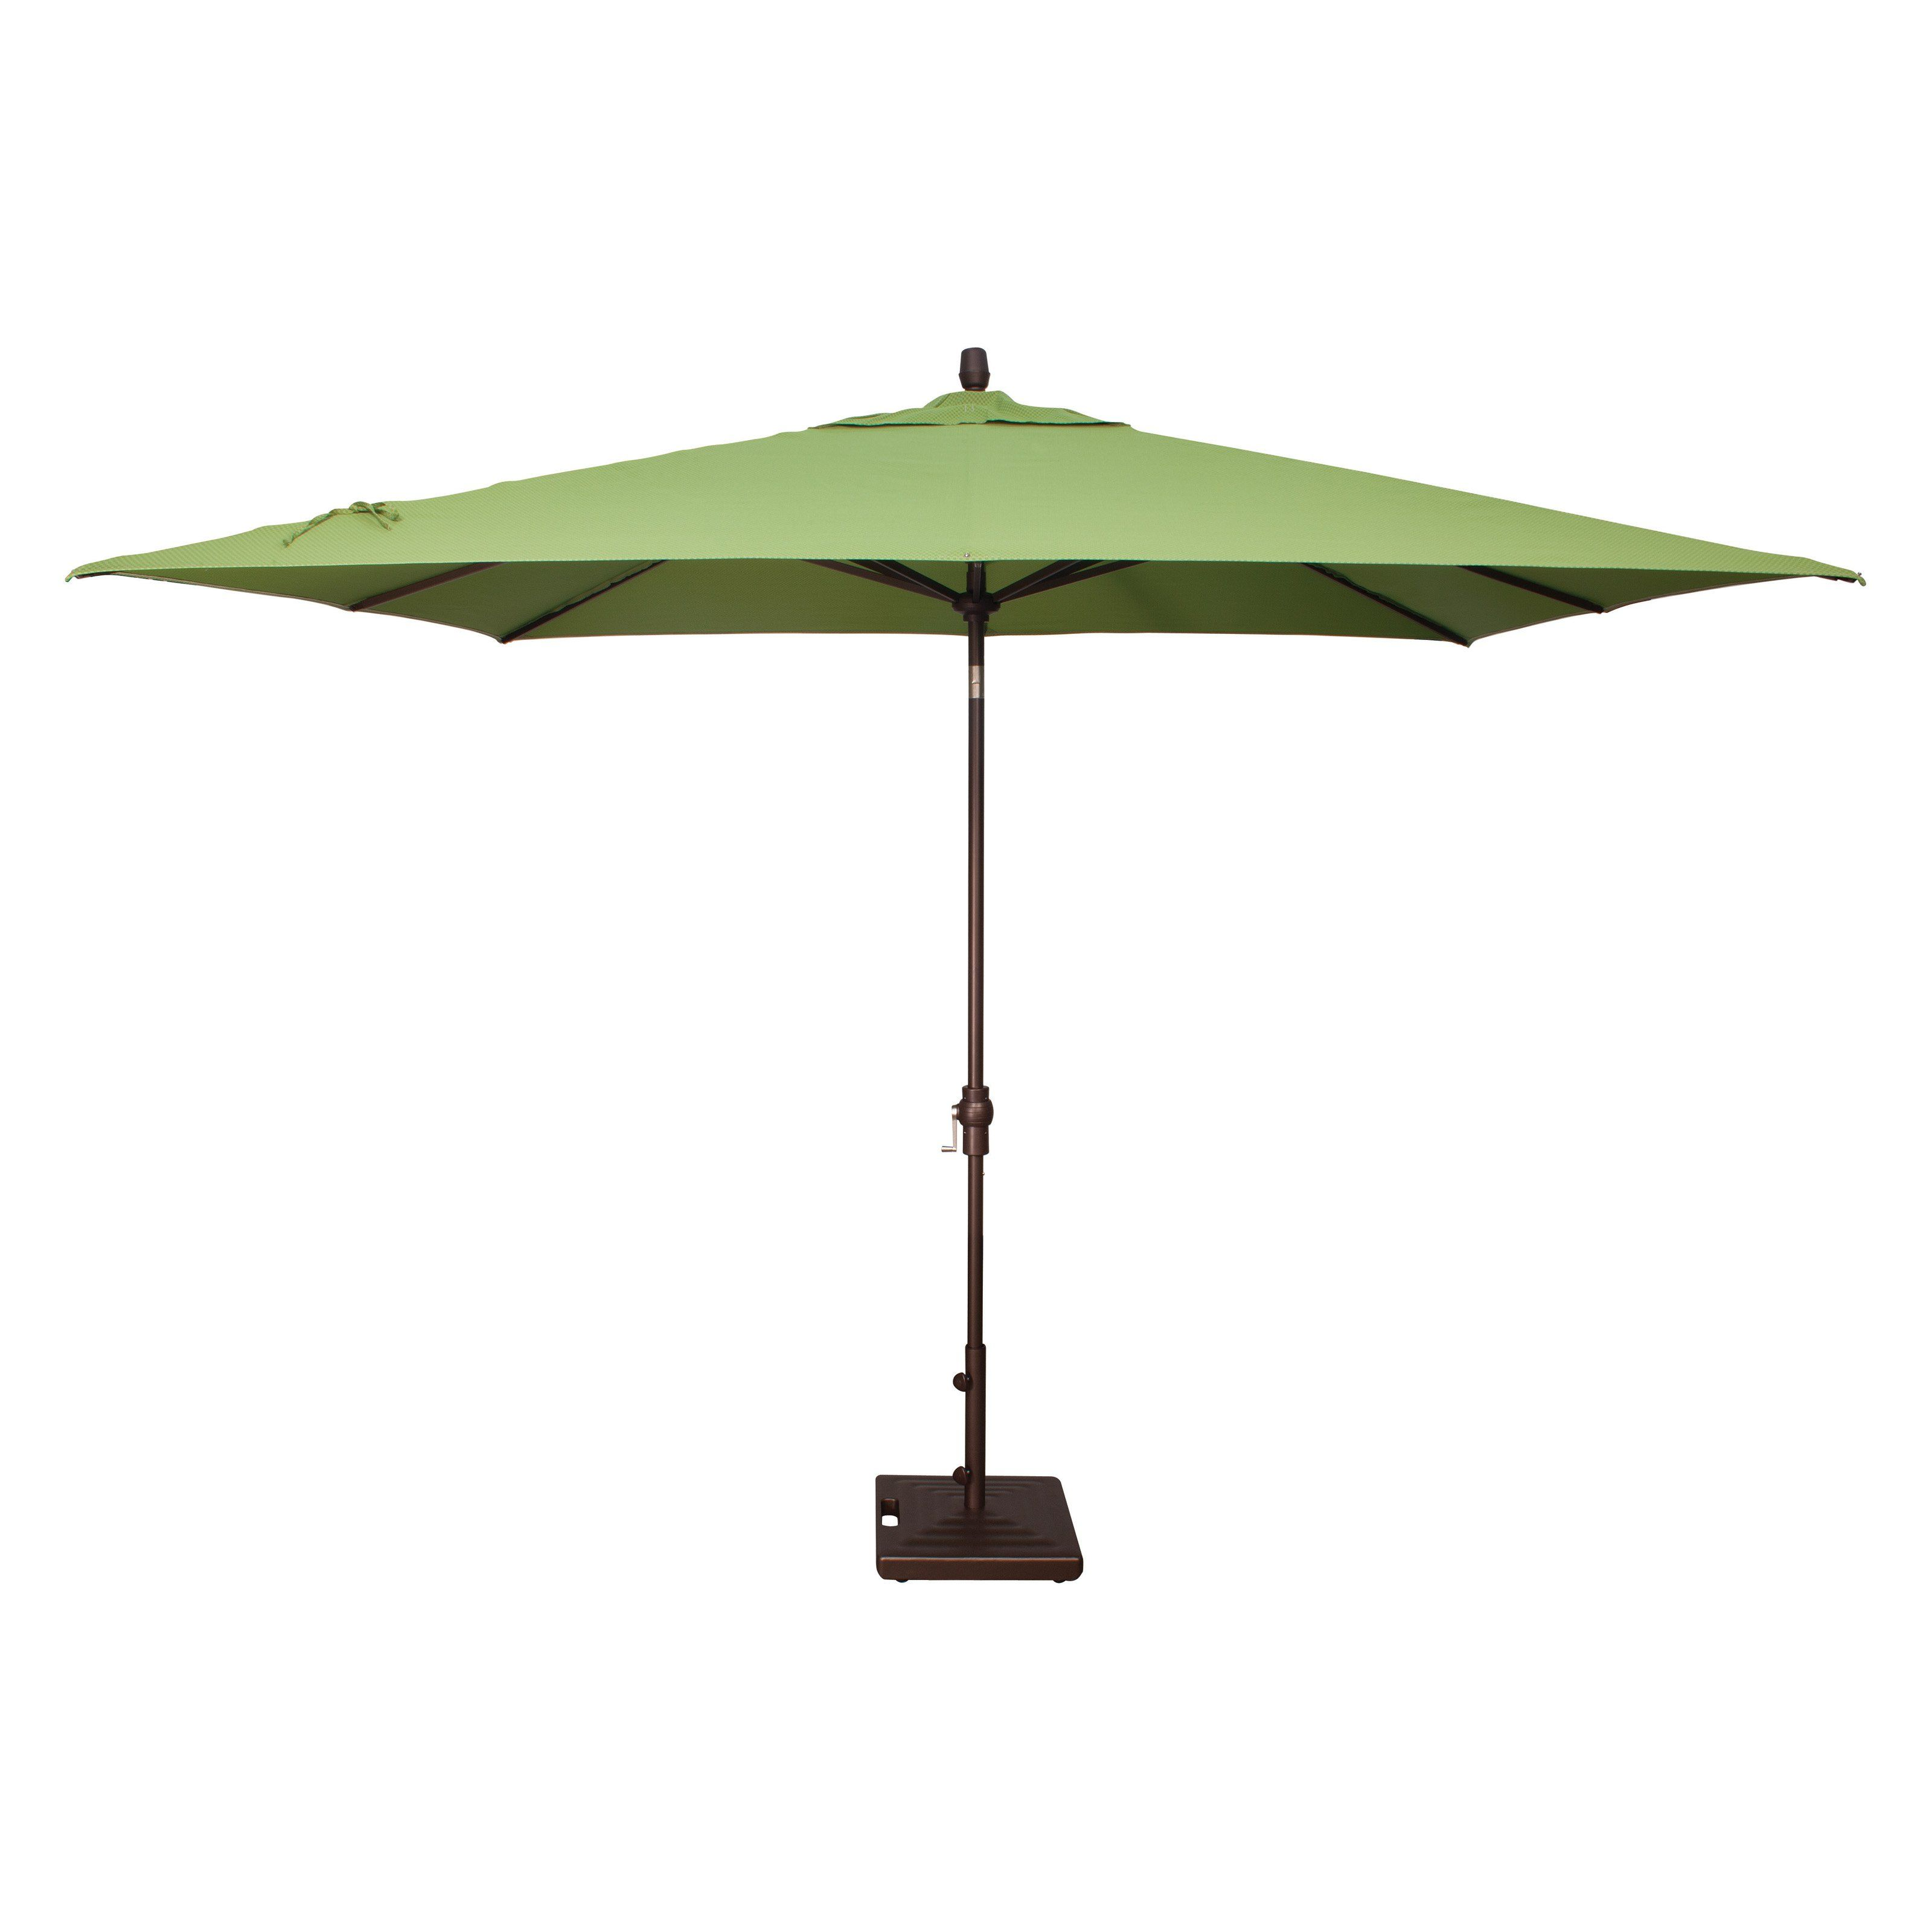 ft rectangular umbrellas patio giant awesome unique of umbrella wonderful big new lots large s